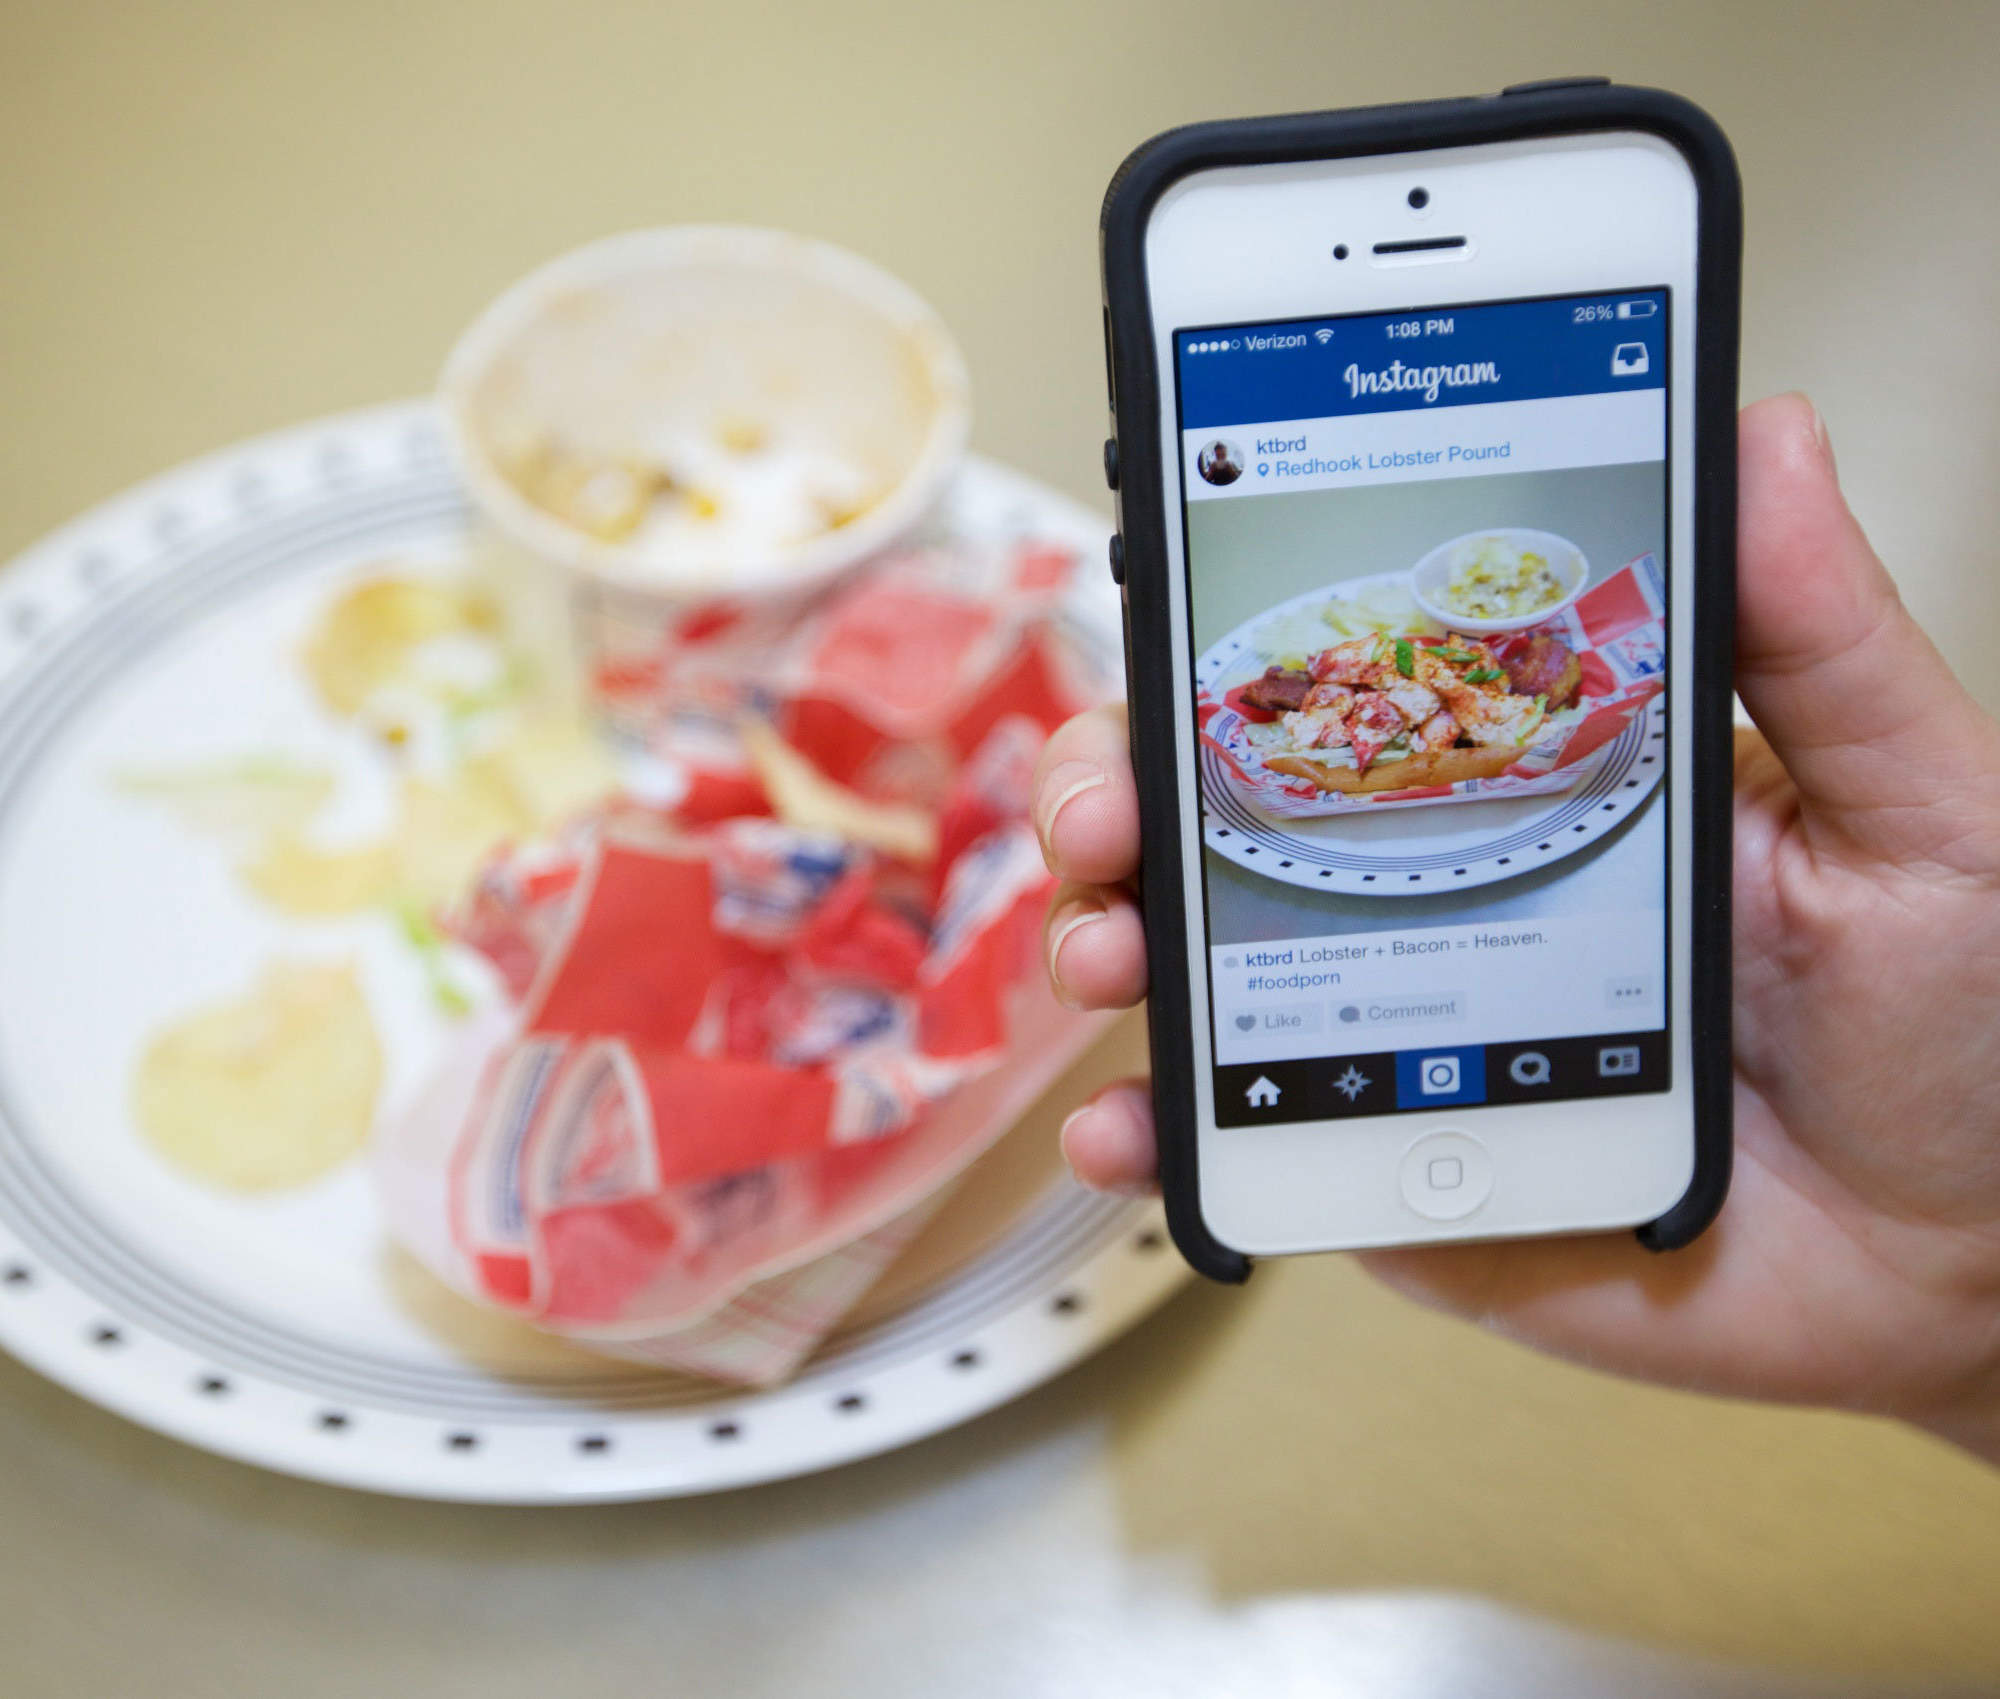 Social Media and Food - Magazine cover